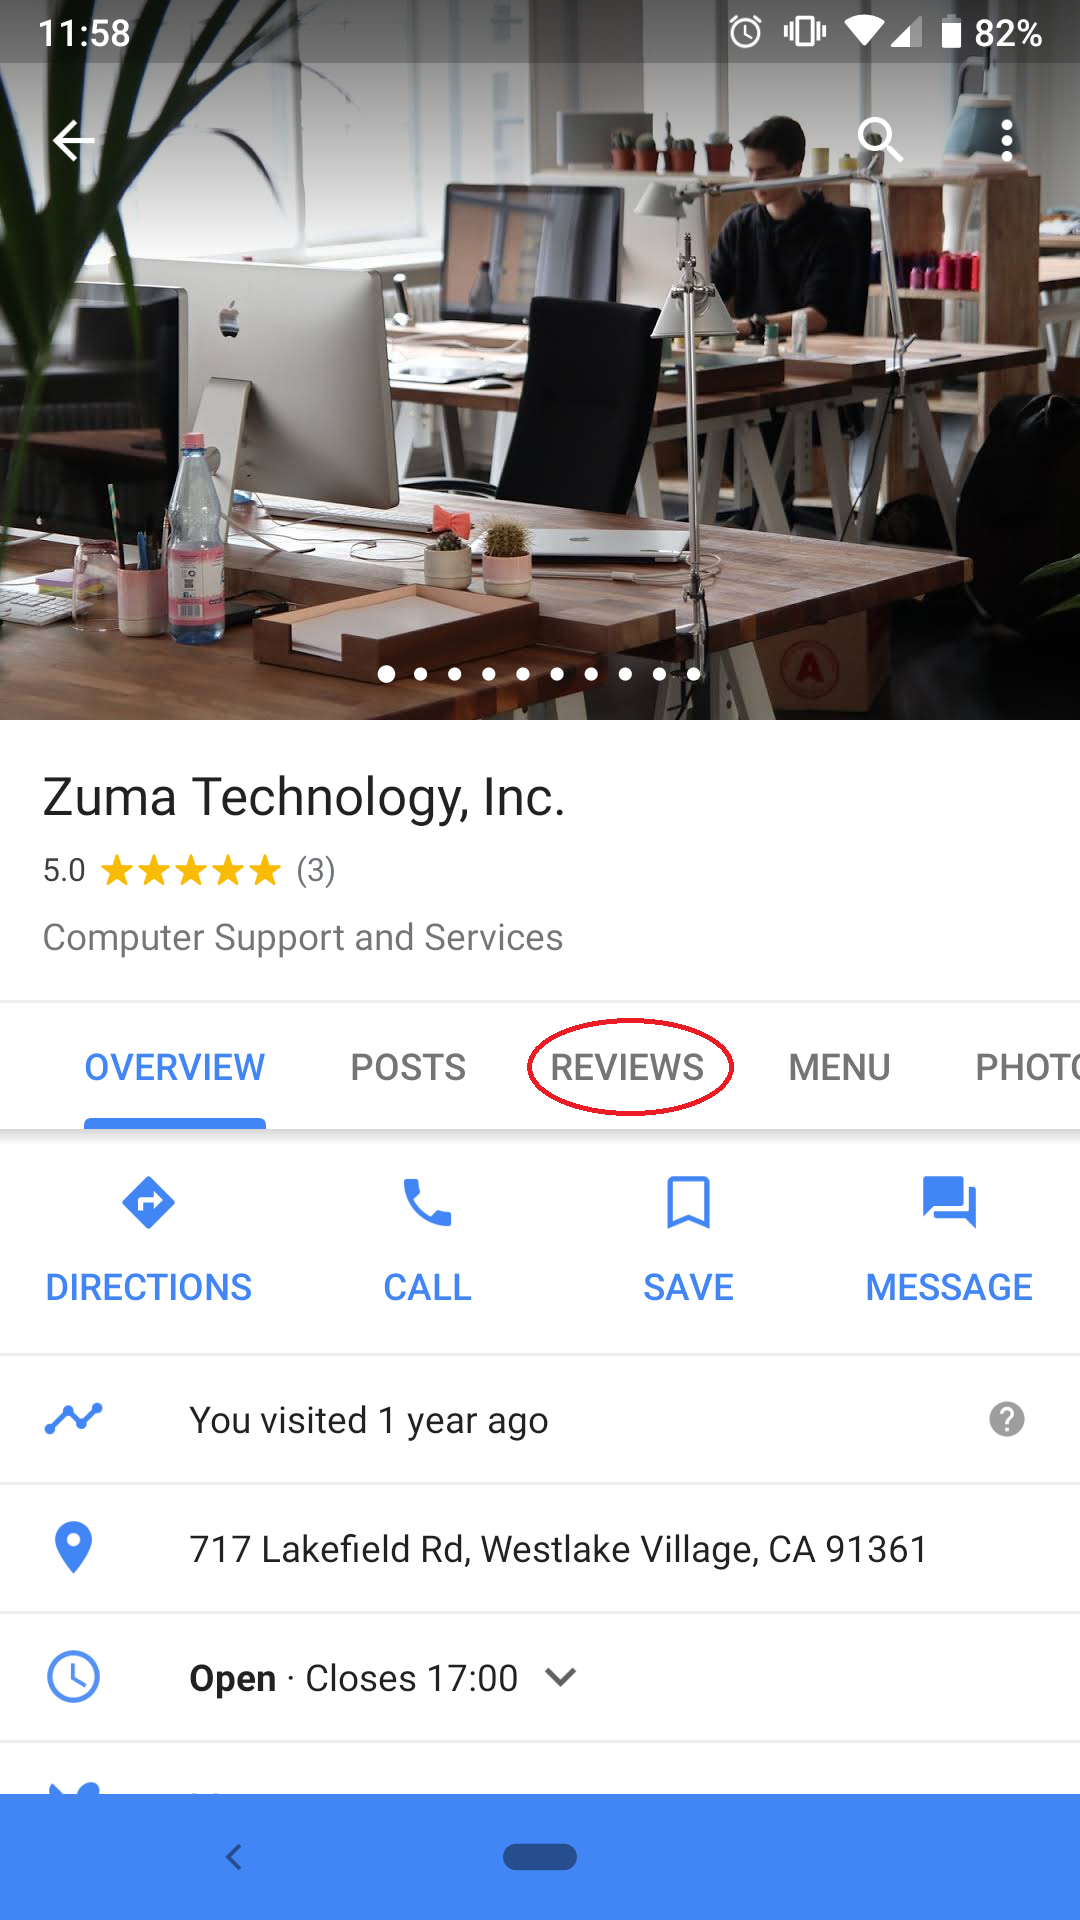 How To Leave A Google Review - Managed Service Provider